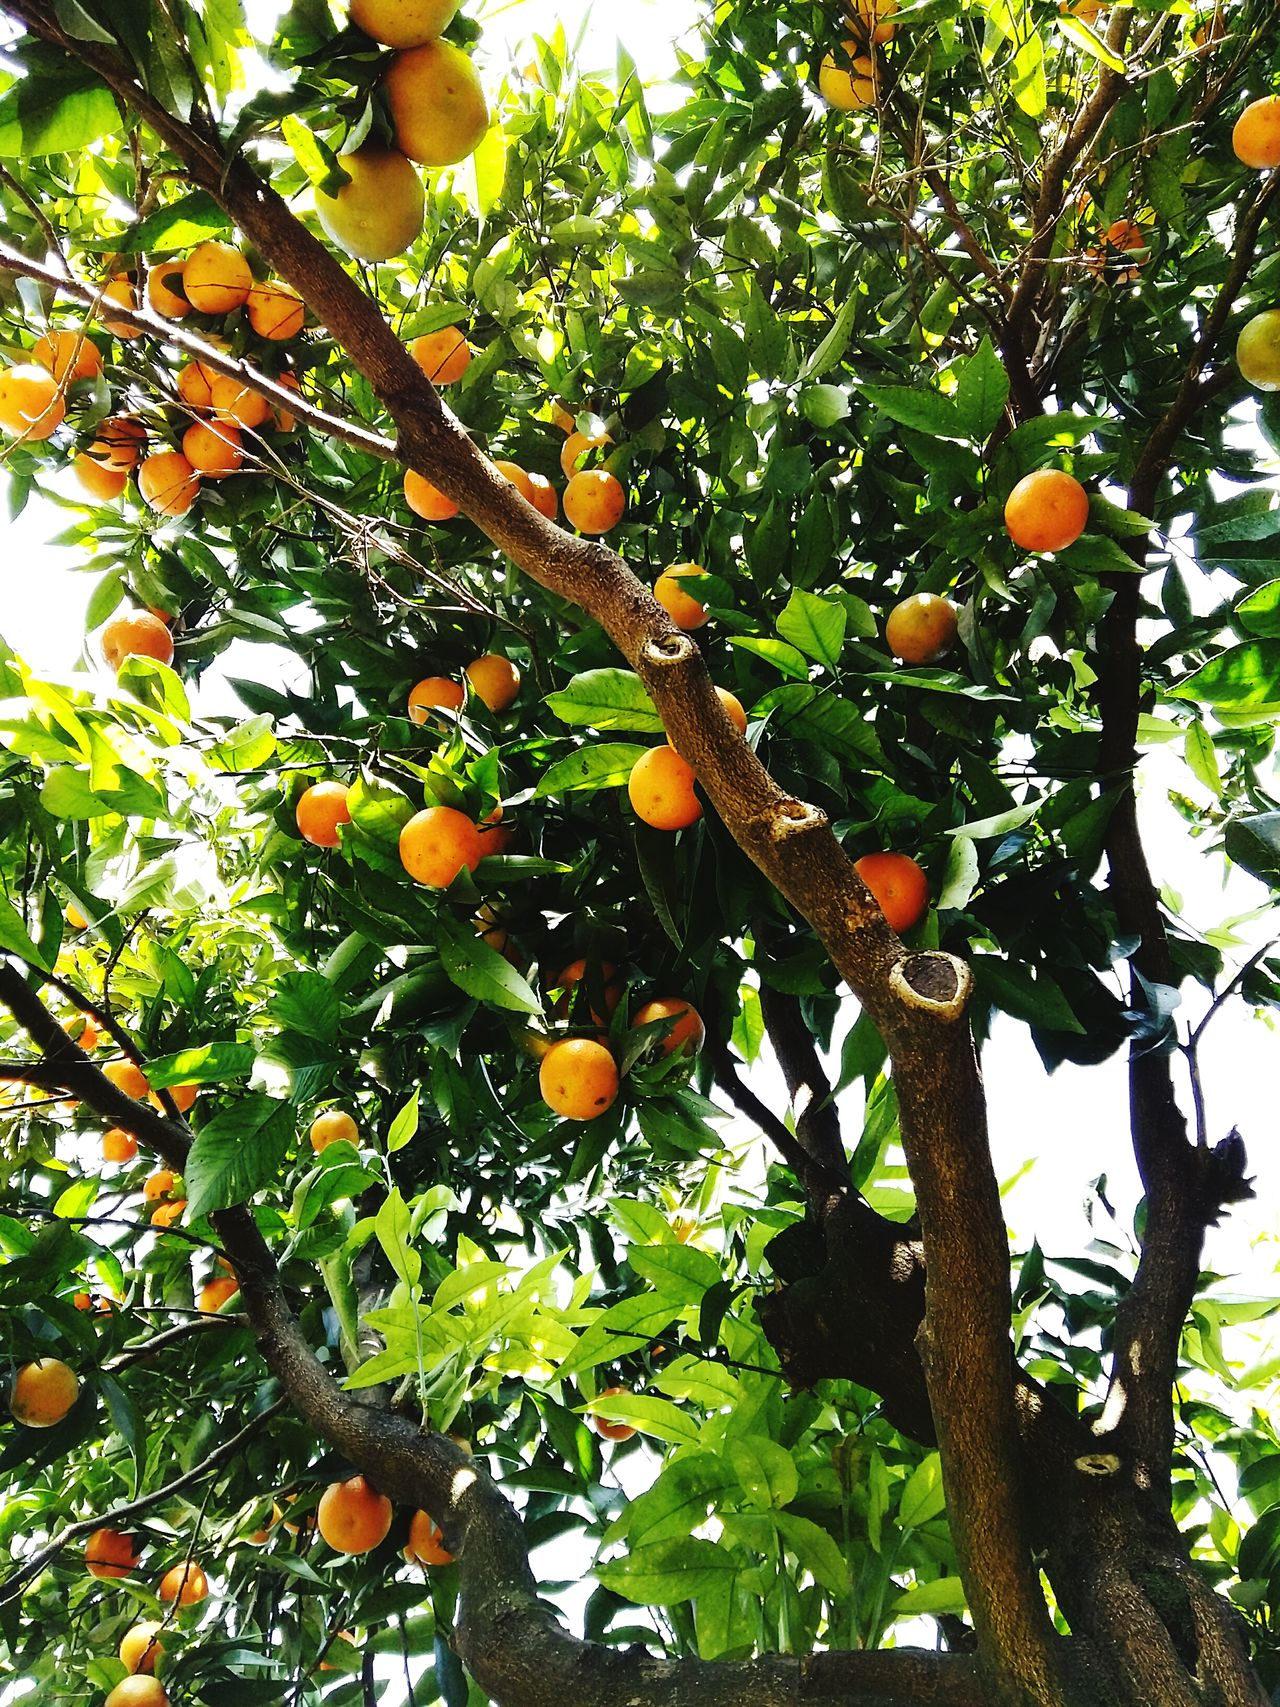 Fruits Fruit Nature Citrus Fruit Tree Growth Orange - Fruit Orange Tree Lemon Nature Freshness Food And Drink Green Color Food No People Picoftheday Eyeem Best Shot Colors Style Photography Casal Di Principe Garden_world Garden Flower